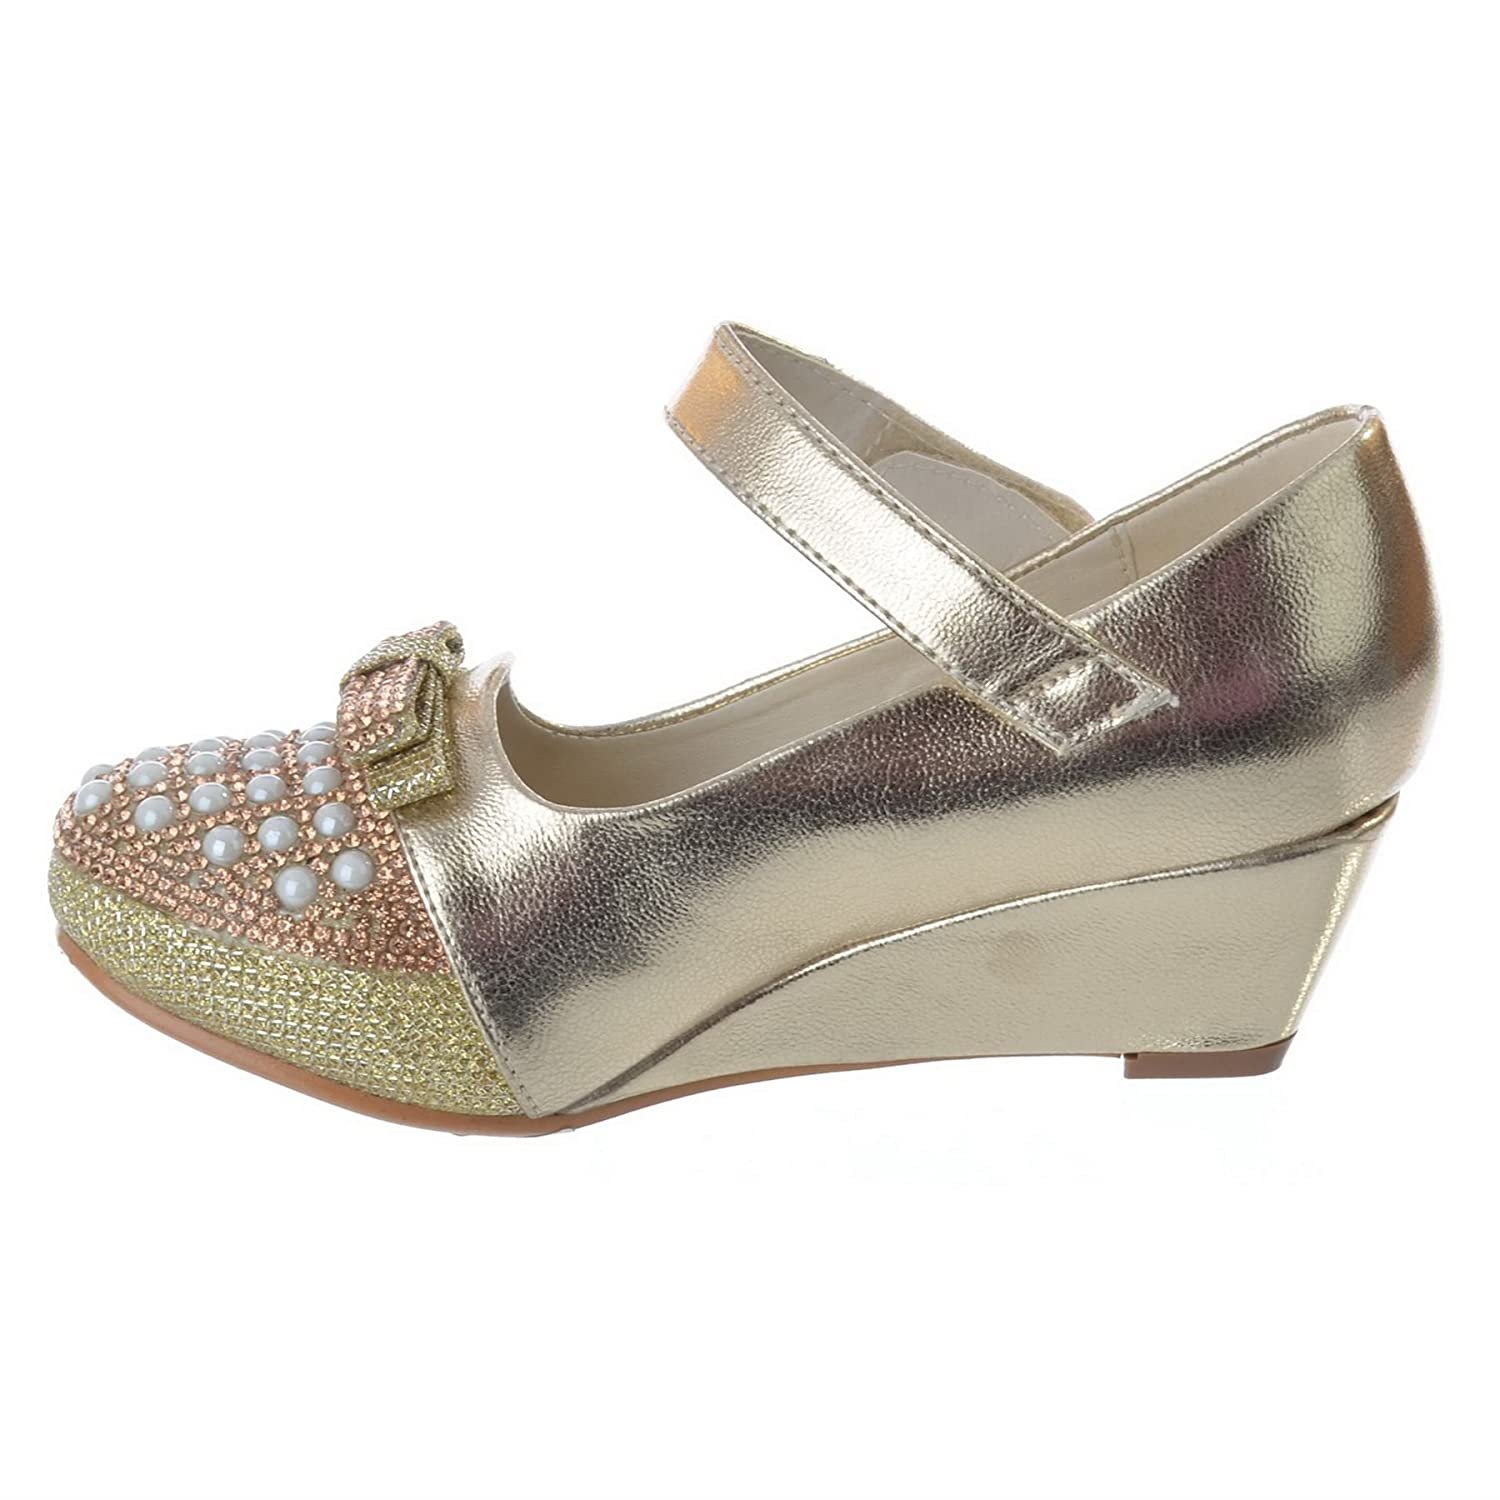 GIRLS KIDS LOW WEDGE HEEL DIAMANTE PARTY WEDDING MARY JANE SANDALS SHOES  SIZE: Amazon.co.uk: Shoes & Bags